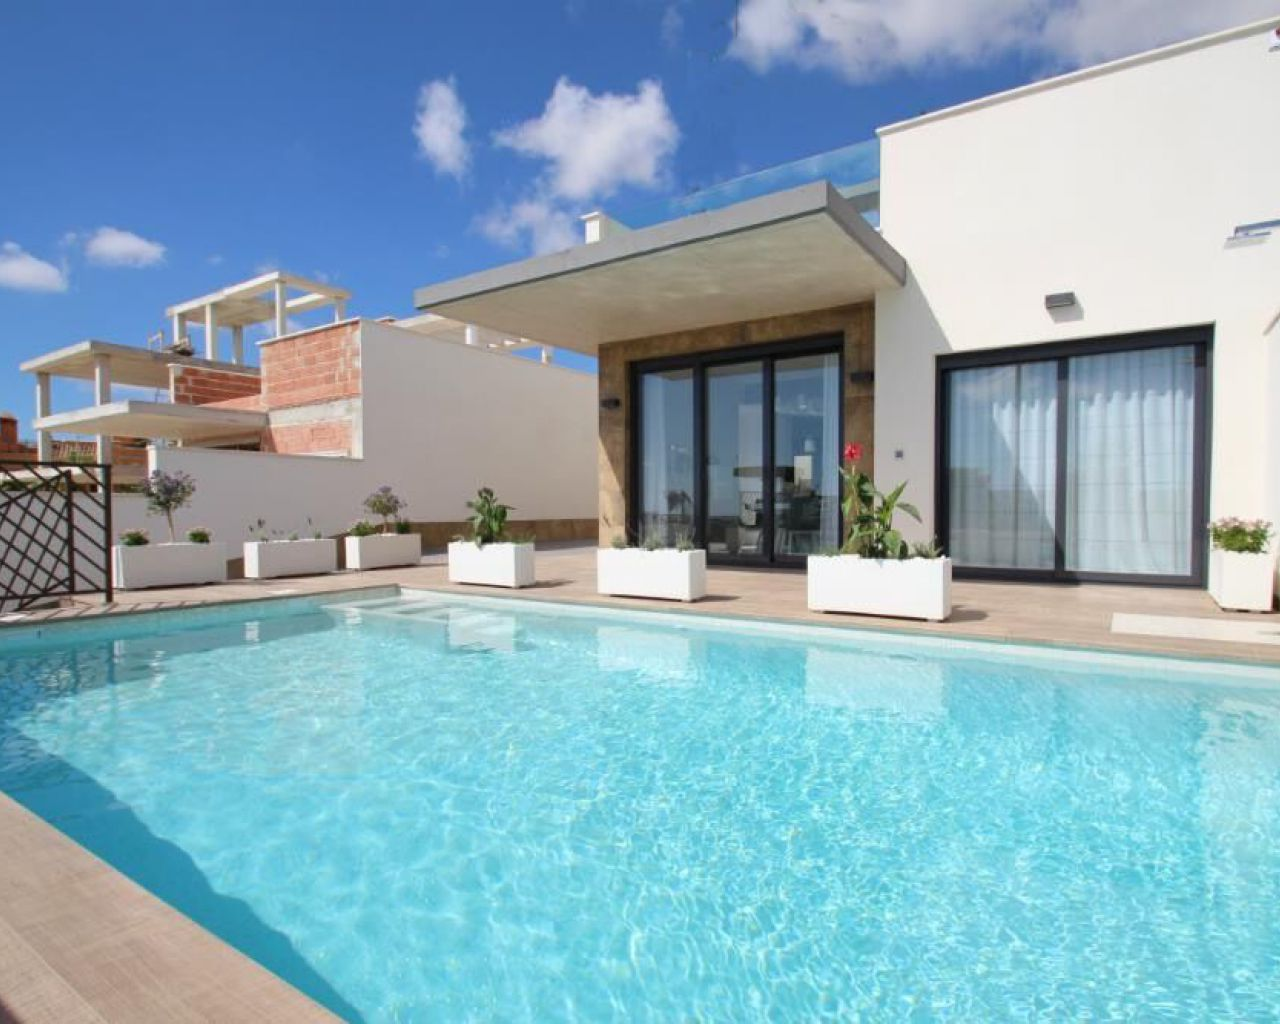 New Build - Villa - PLAYA HONDA - La Manga del Mar Menor